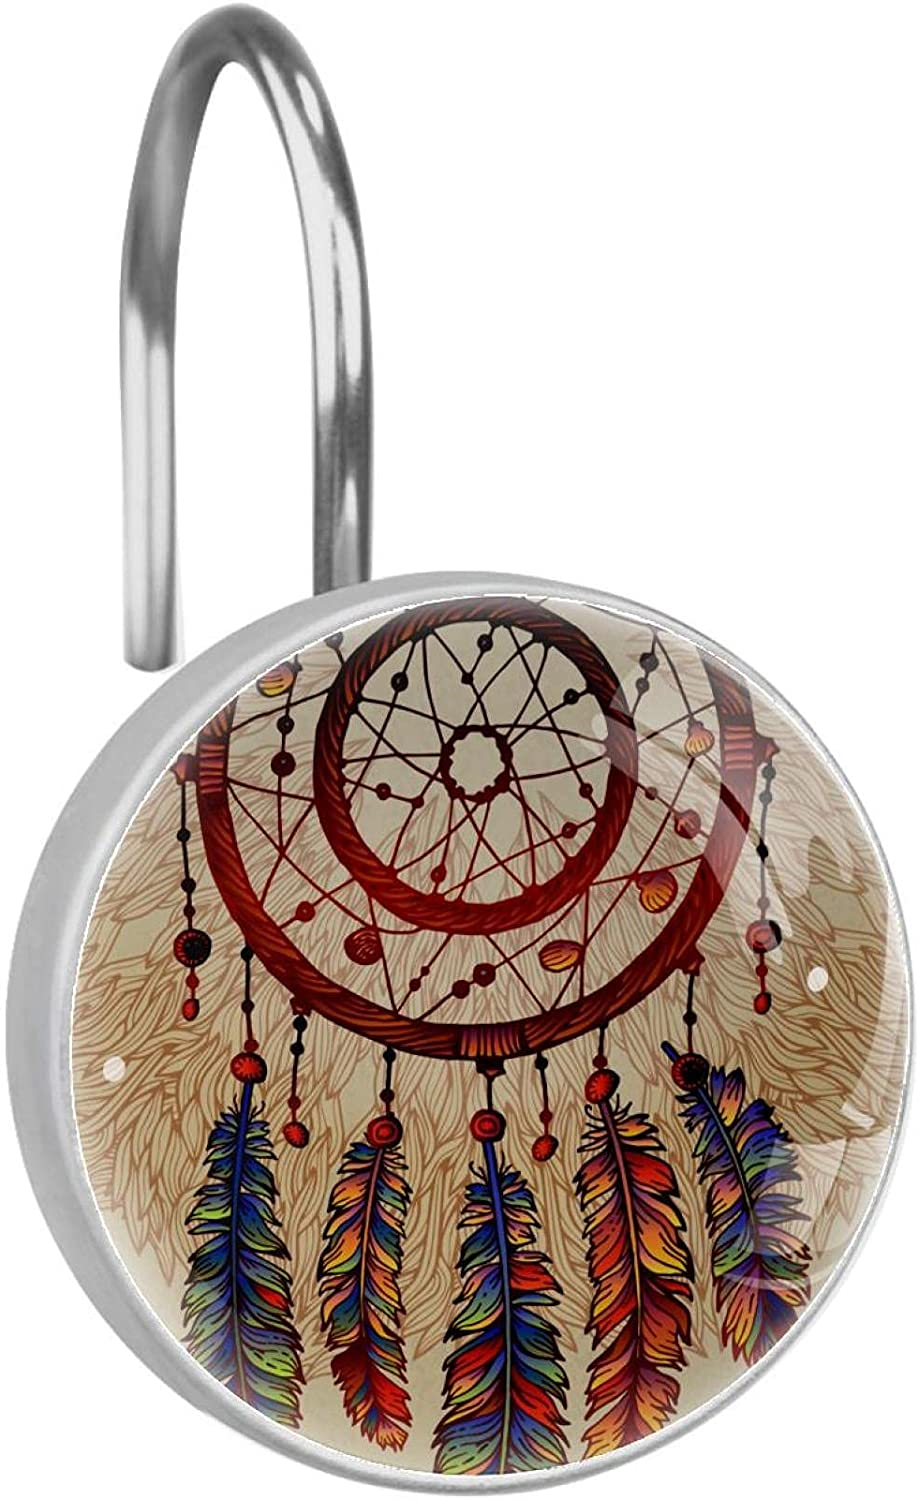 Stainless Popular products Steel Anti-rustCurtain Hooks with Sale price Indian Dreamcatcher